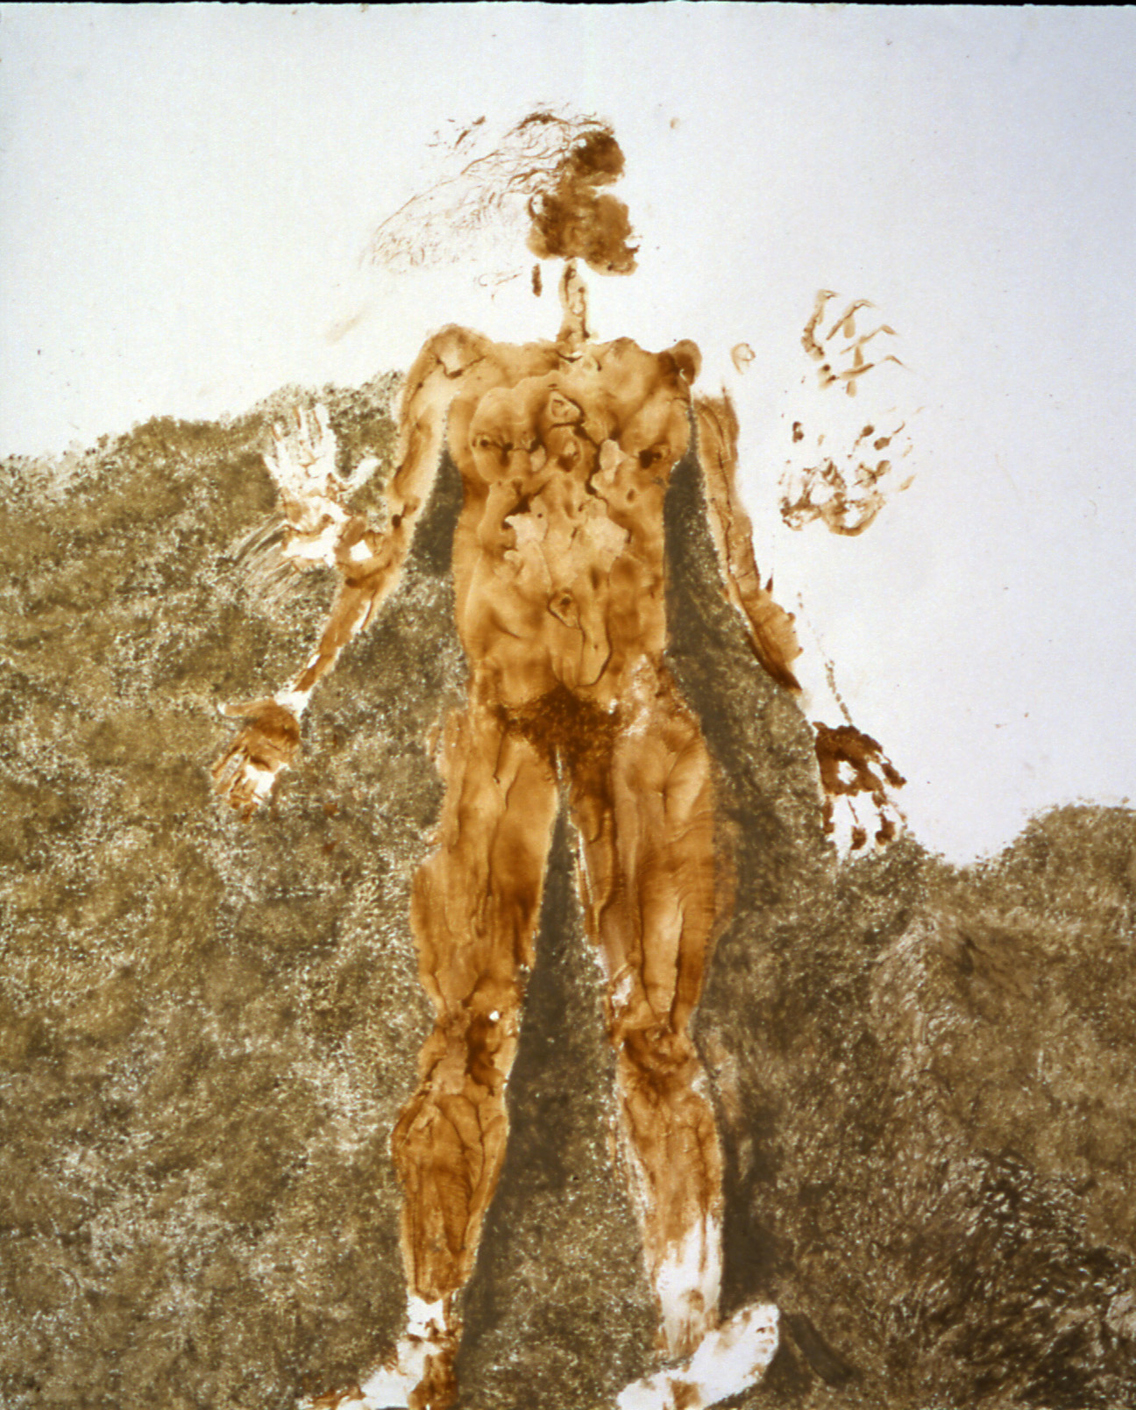 """Stuck 2001  Body print with Kansas City clay and pigment on paper, 5' 5"""" x 6'"""